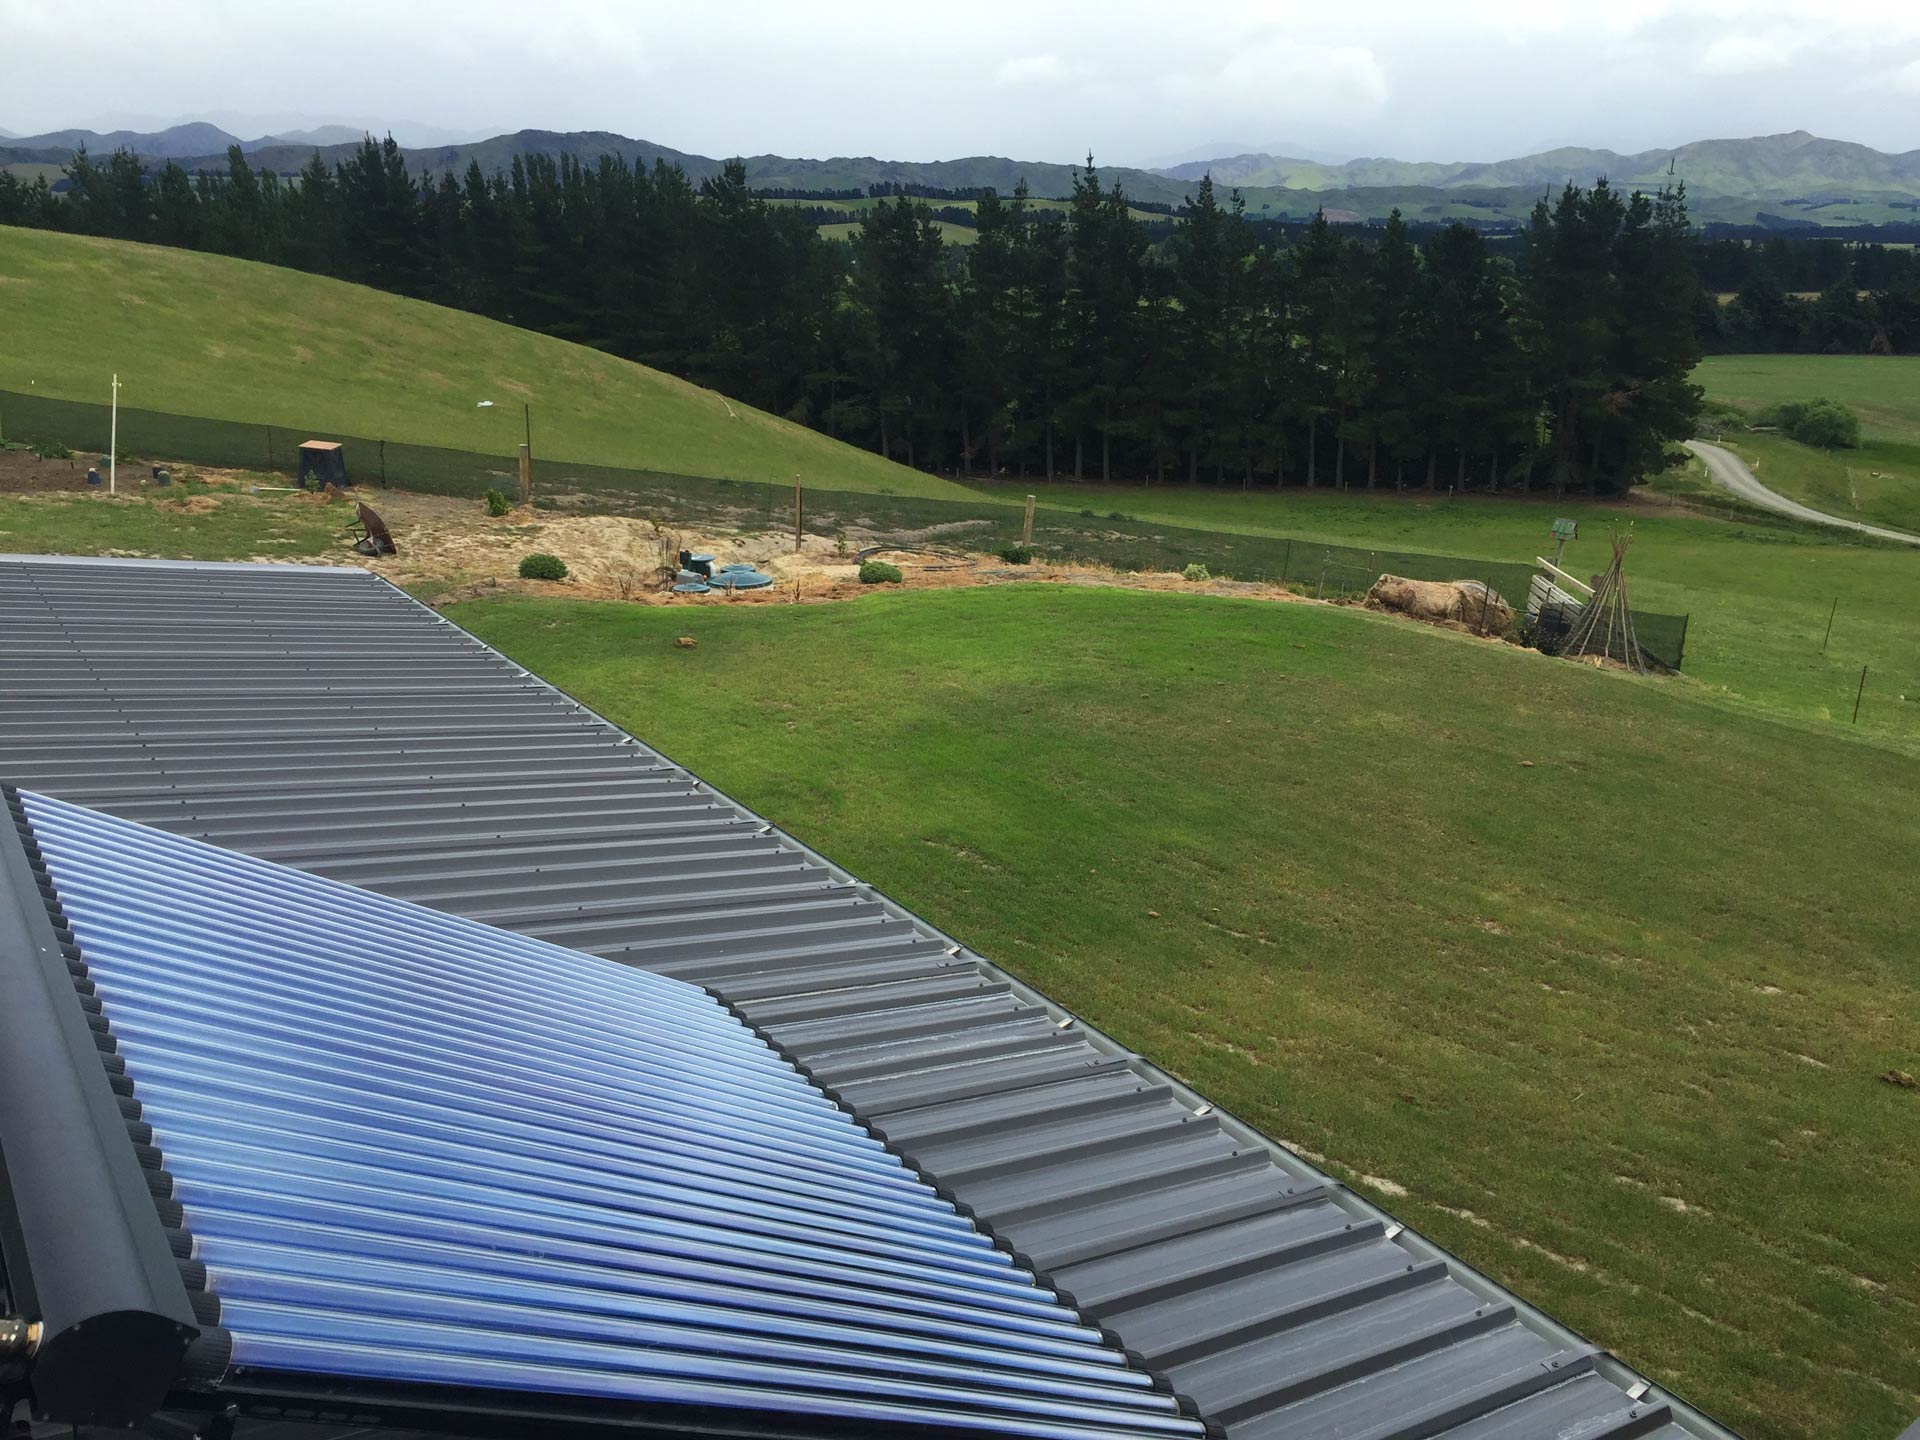 solar panel looking over Canterbury country side hills and fields